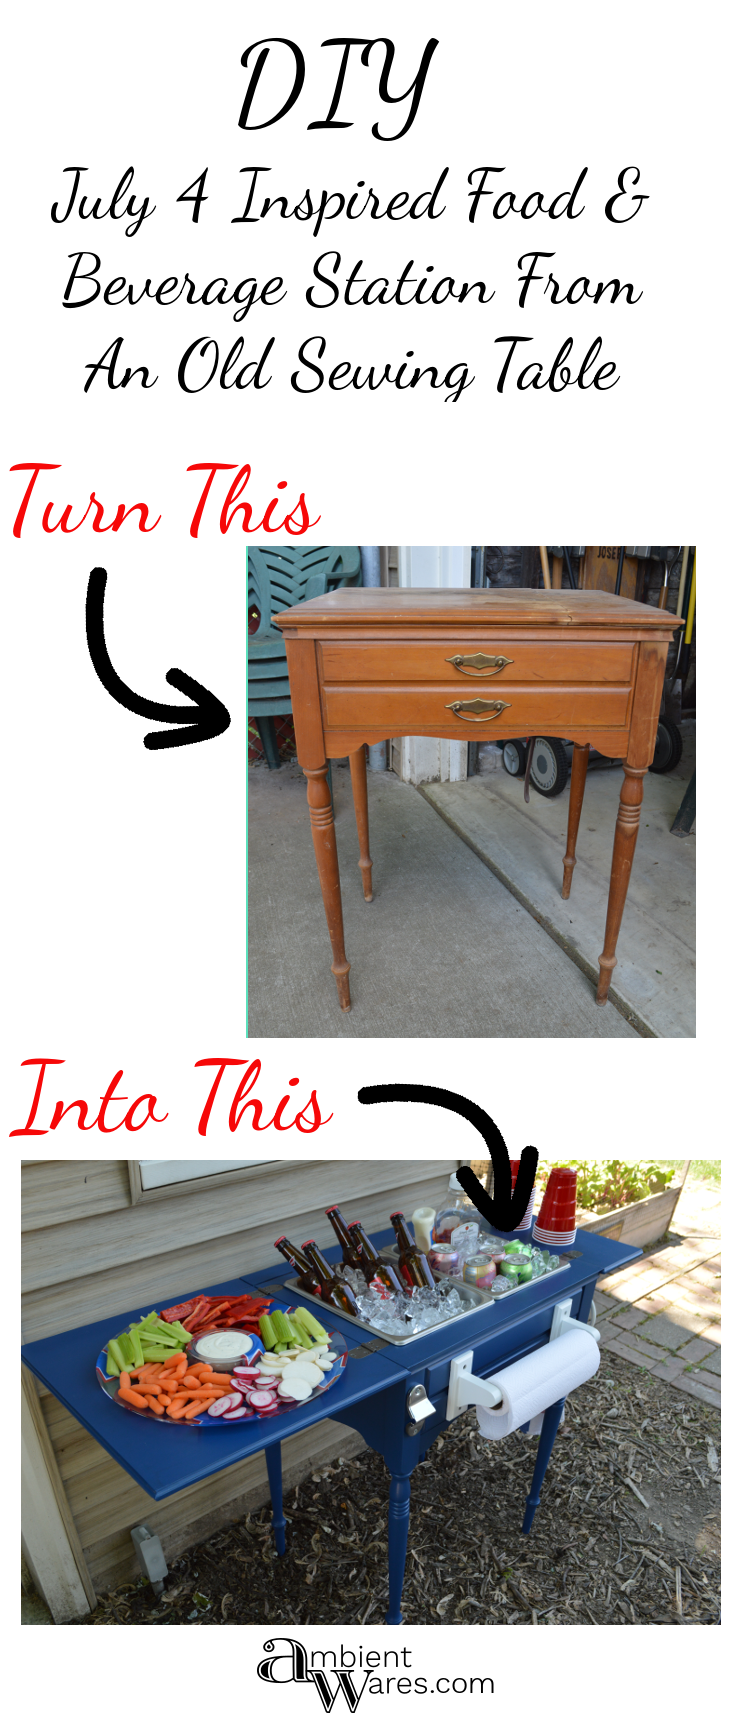 Party Station From An Old Sewing Table